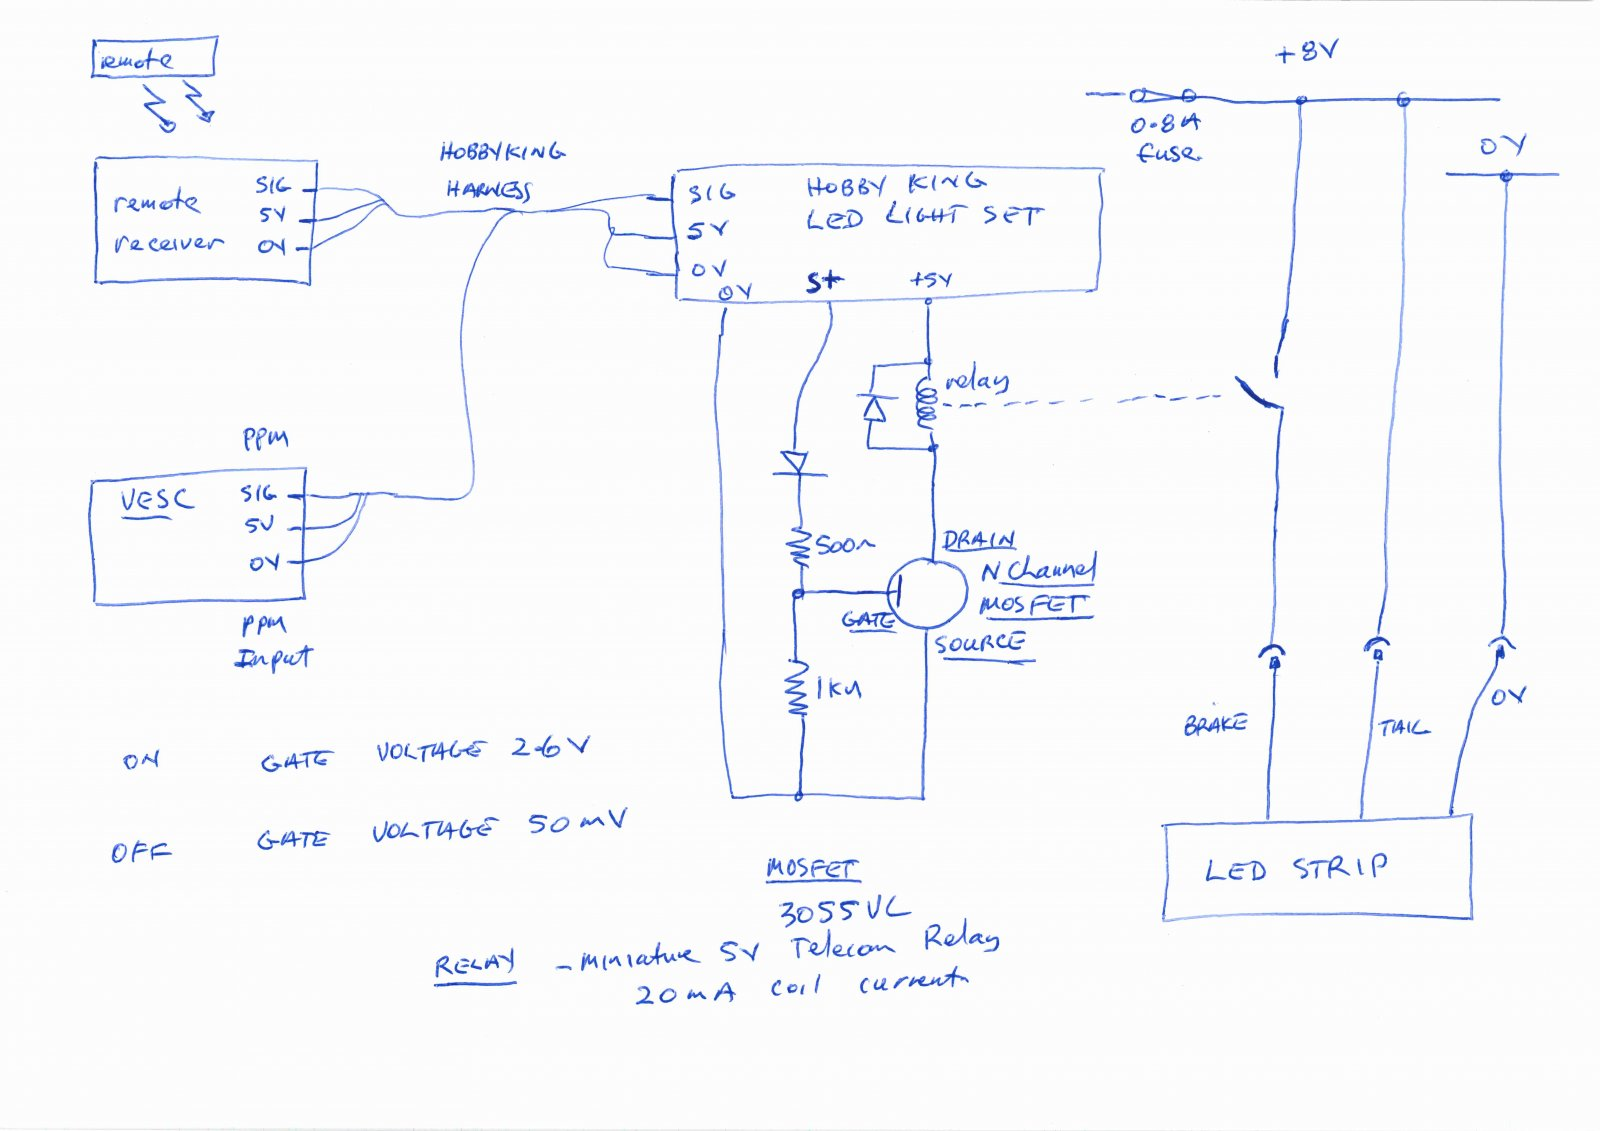 Lithonia can light wiring wiring solutions modern lithonia lighting ofl1 led wiring diagram photos electrical asfbconference2016 Choice Image